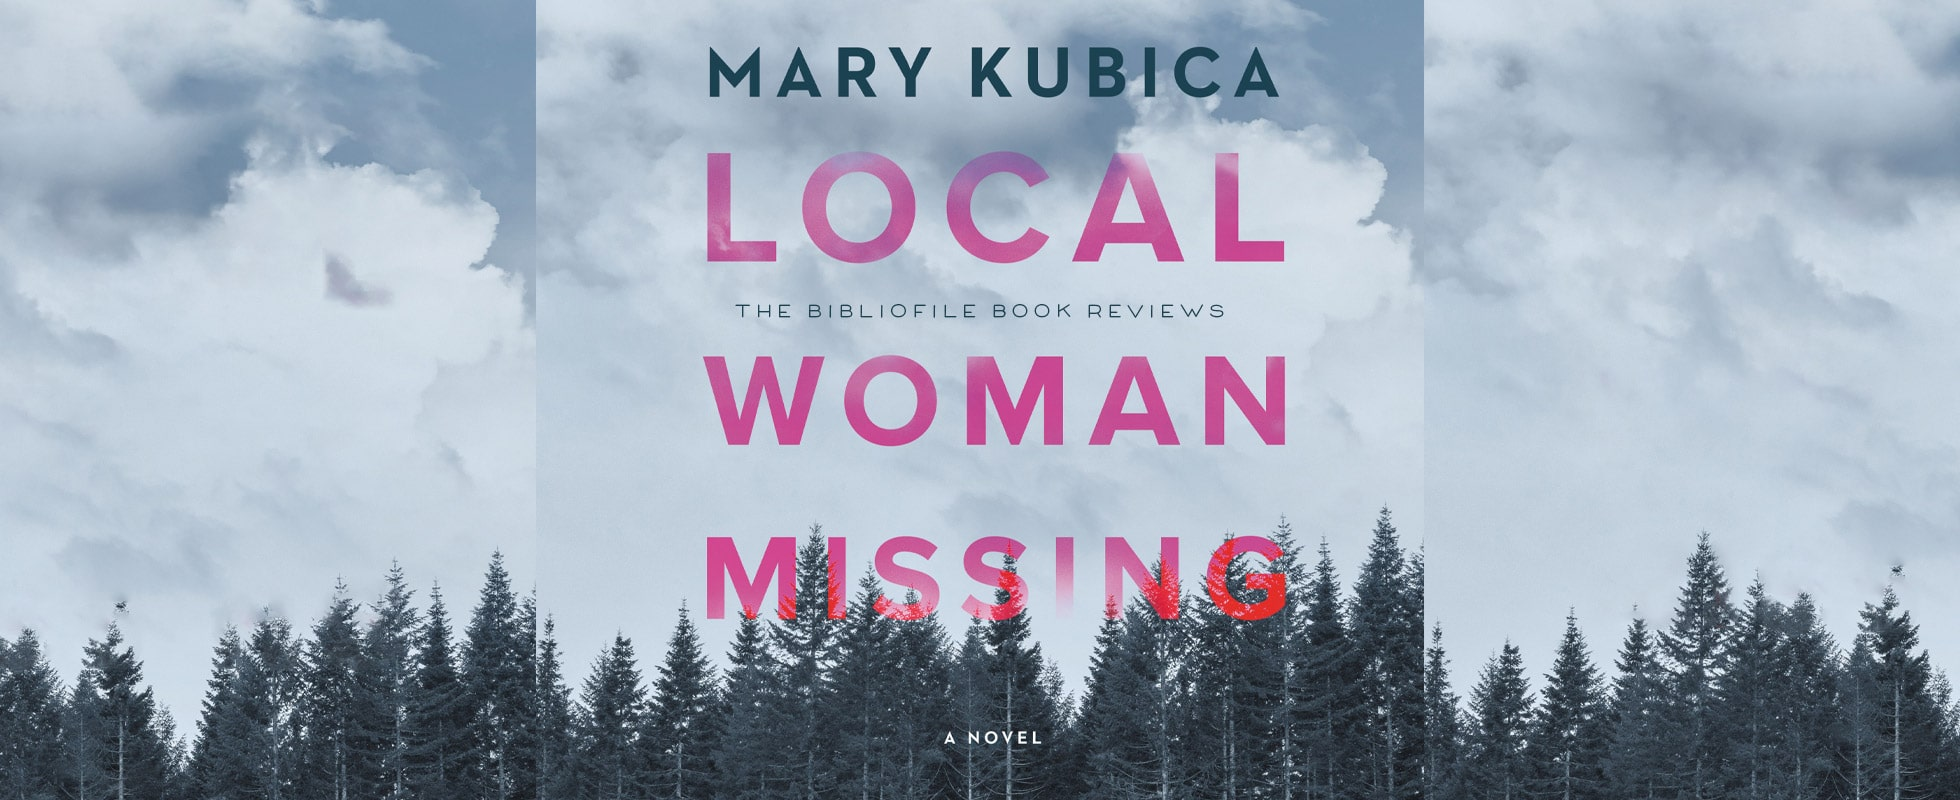 local woman missing by mary kubica book review plot summary synopsis recap spoilers